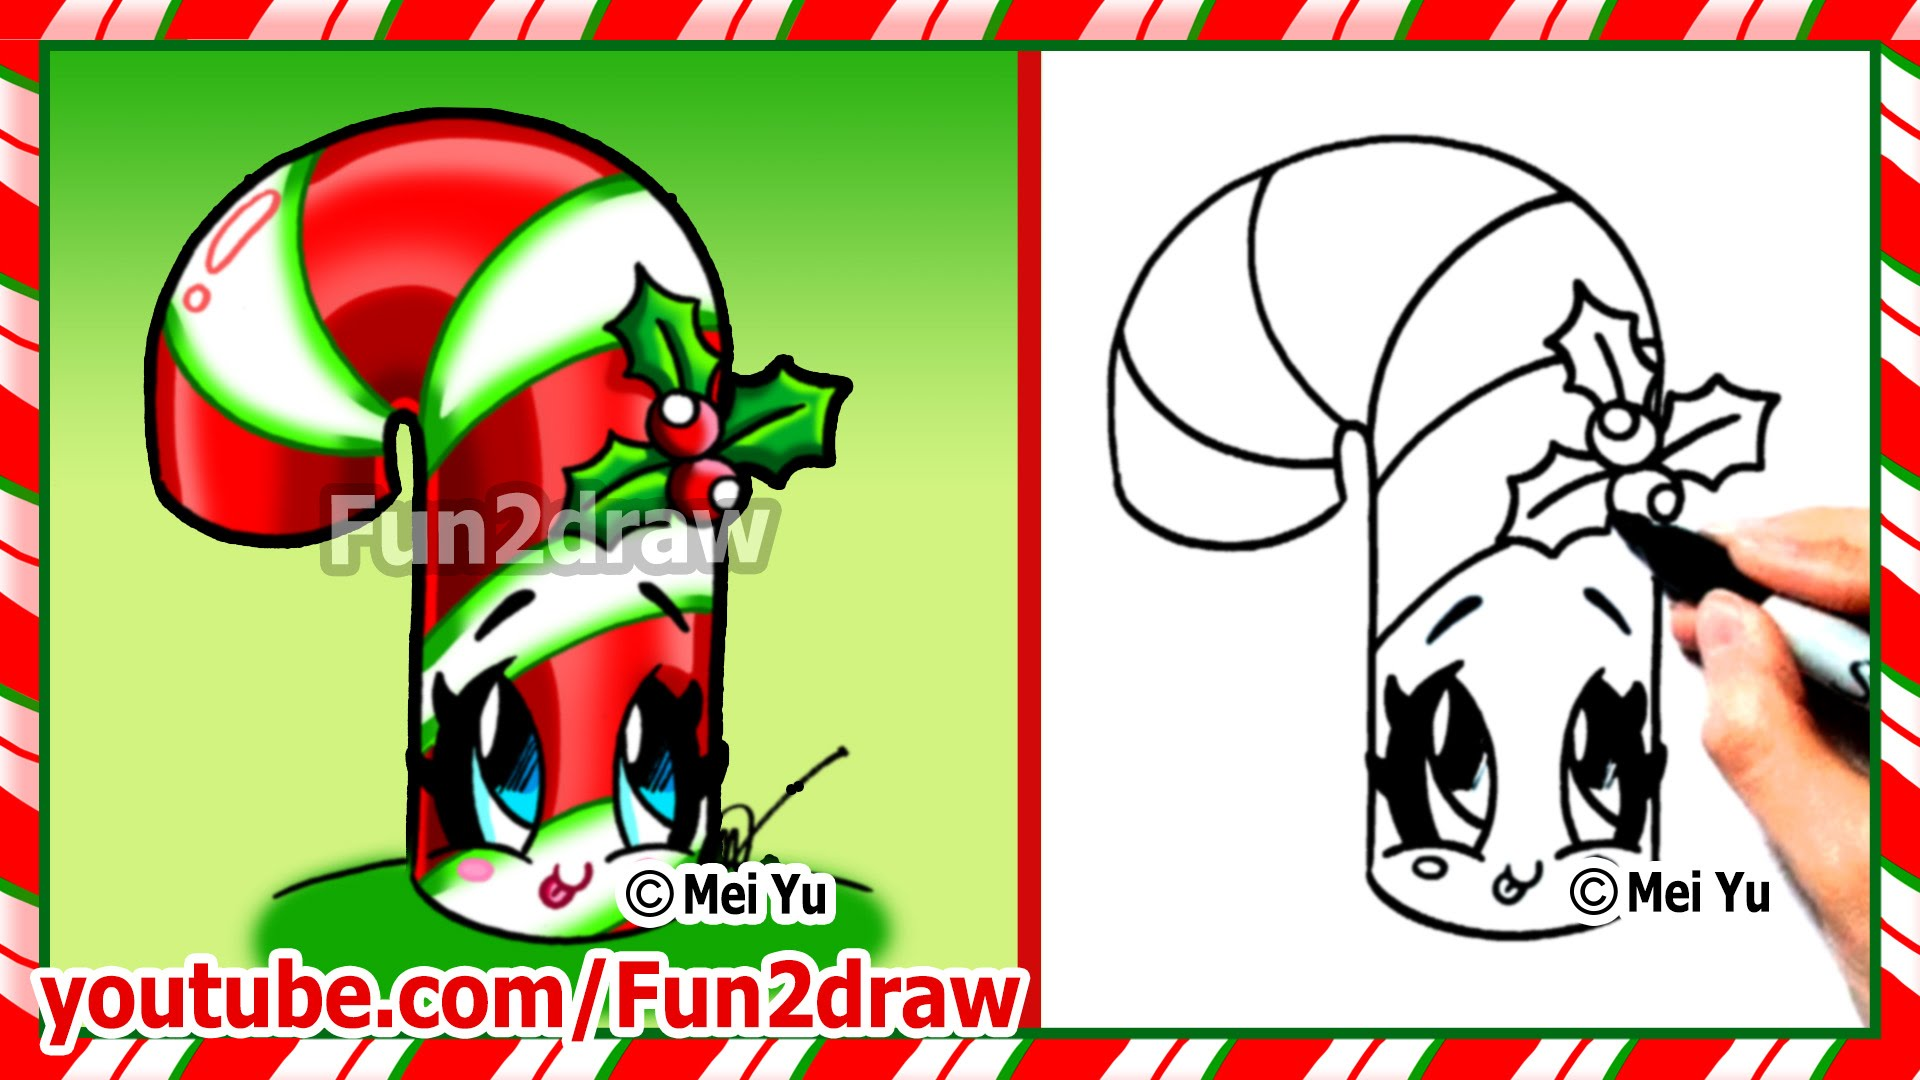 Drawn puppy fun christmas Cute Christmas Cane Fun2draw Things